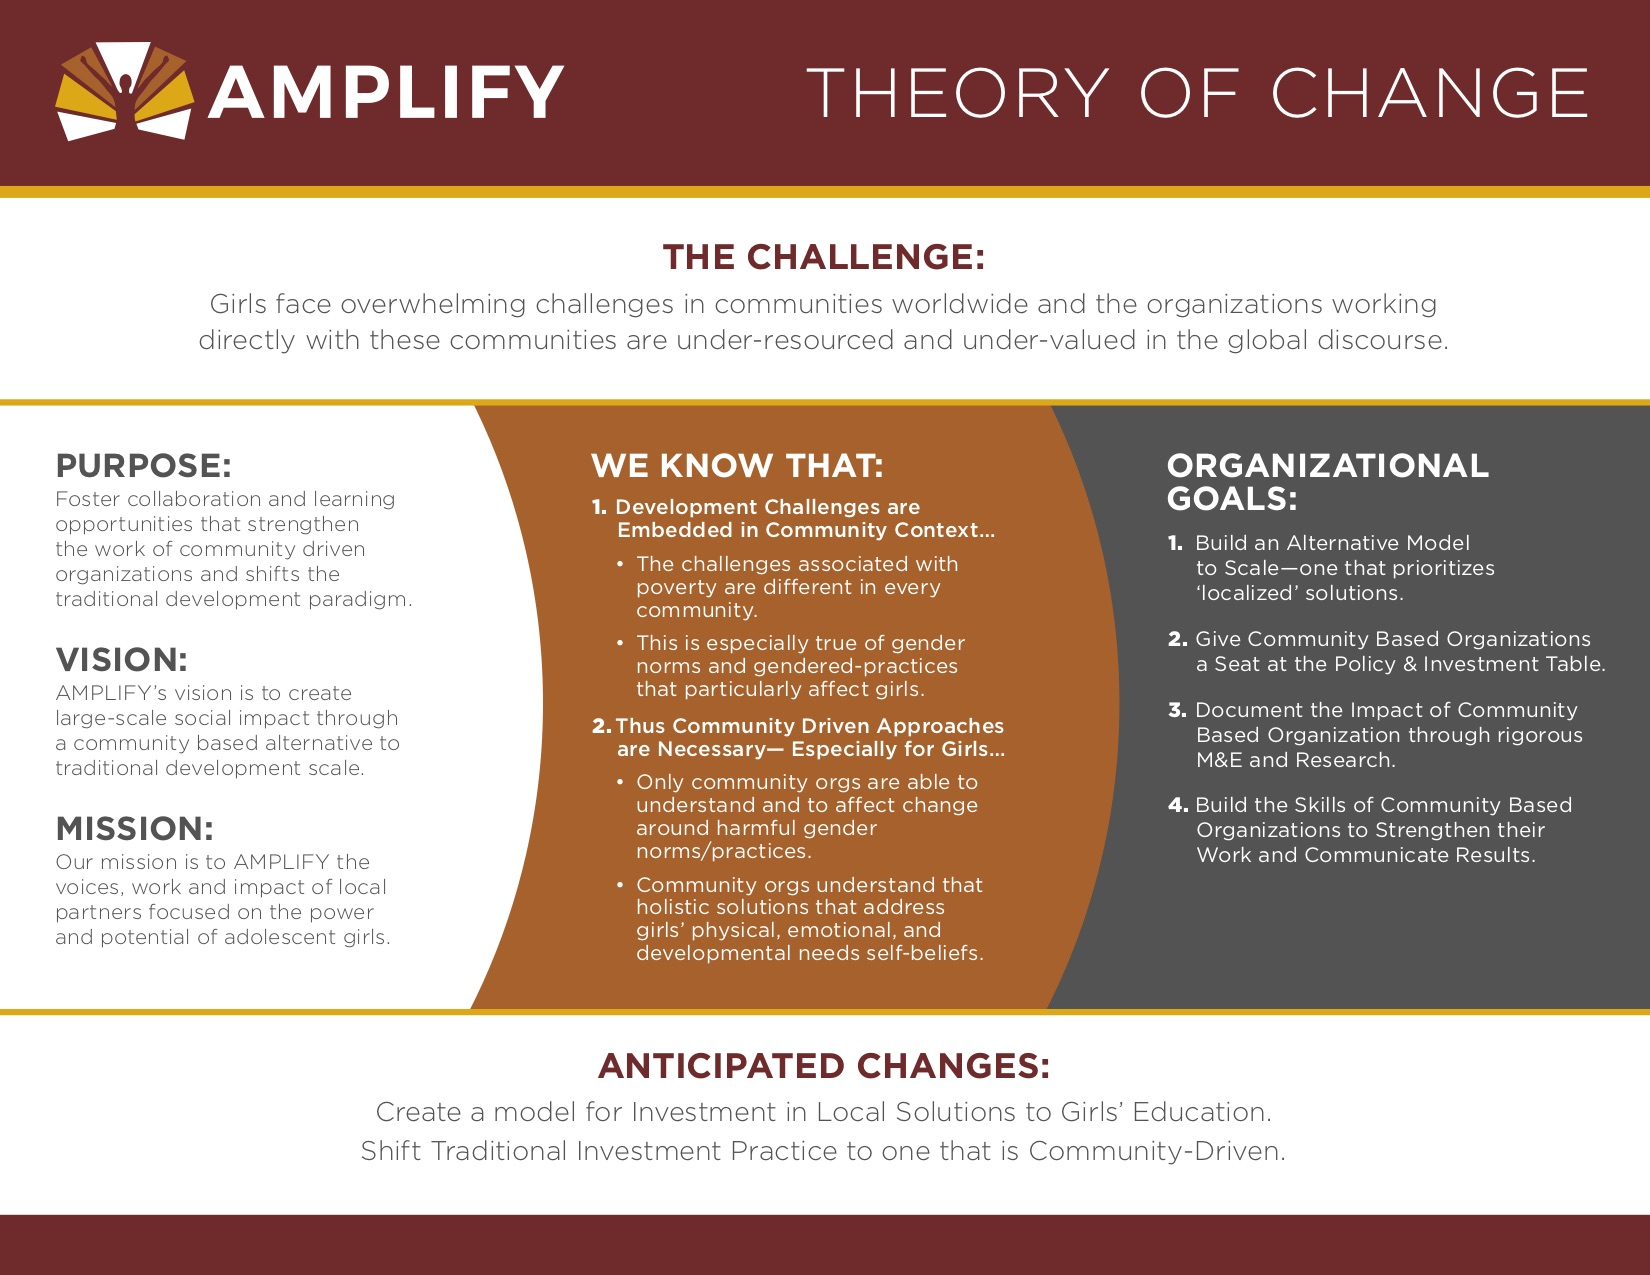 Amplify Theory of Change